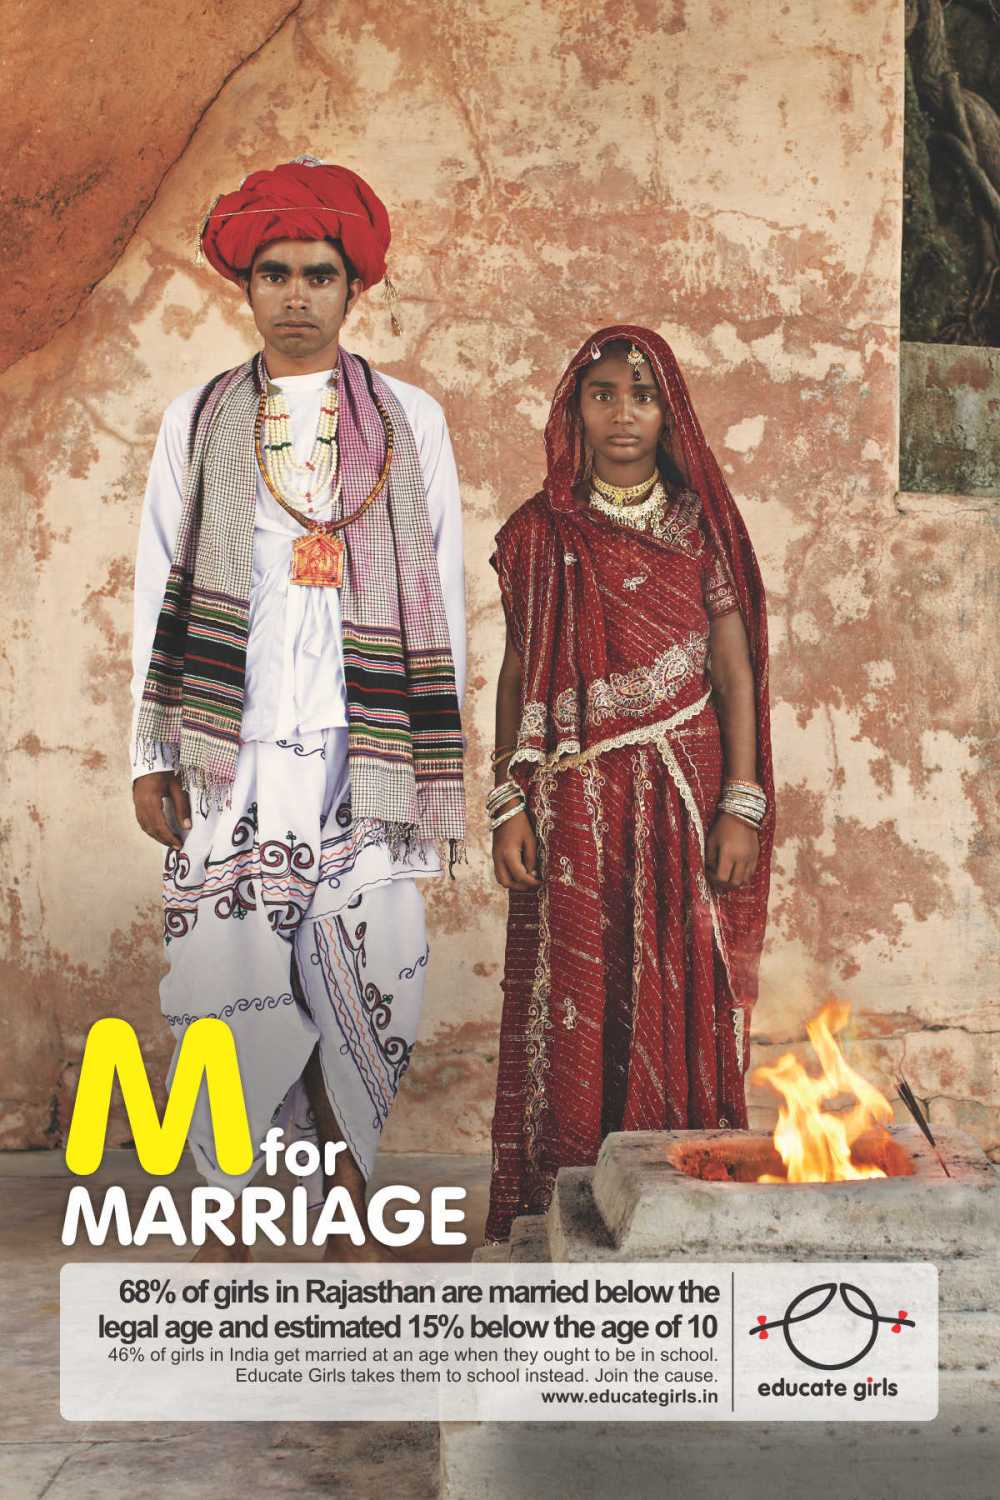 M for Marriage Child Bride Poster.jpg